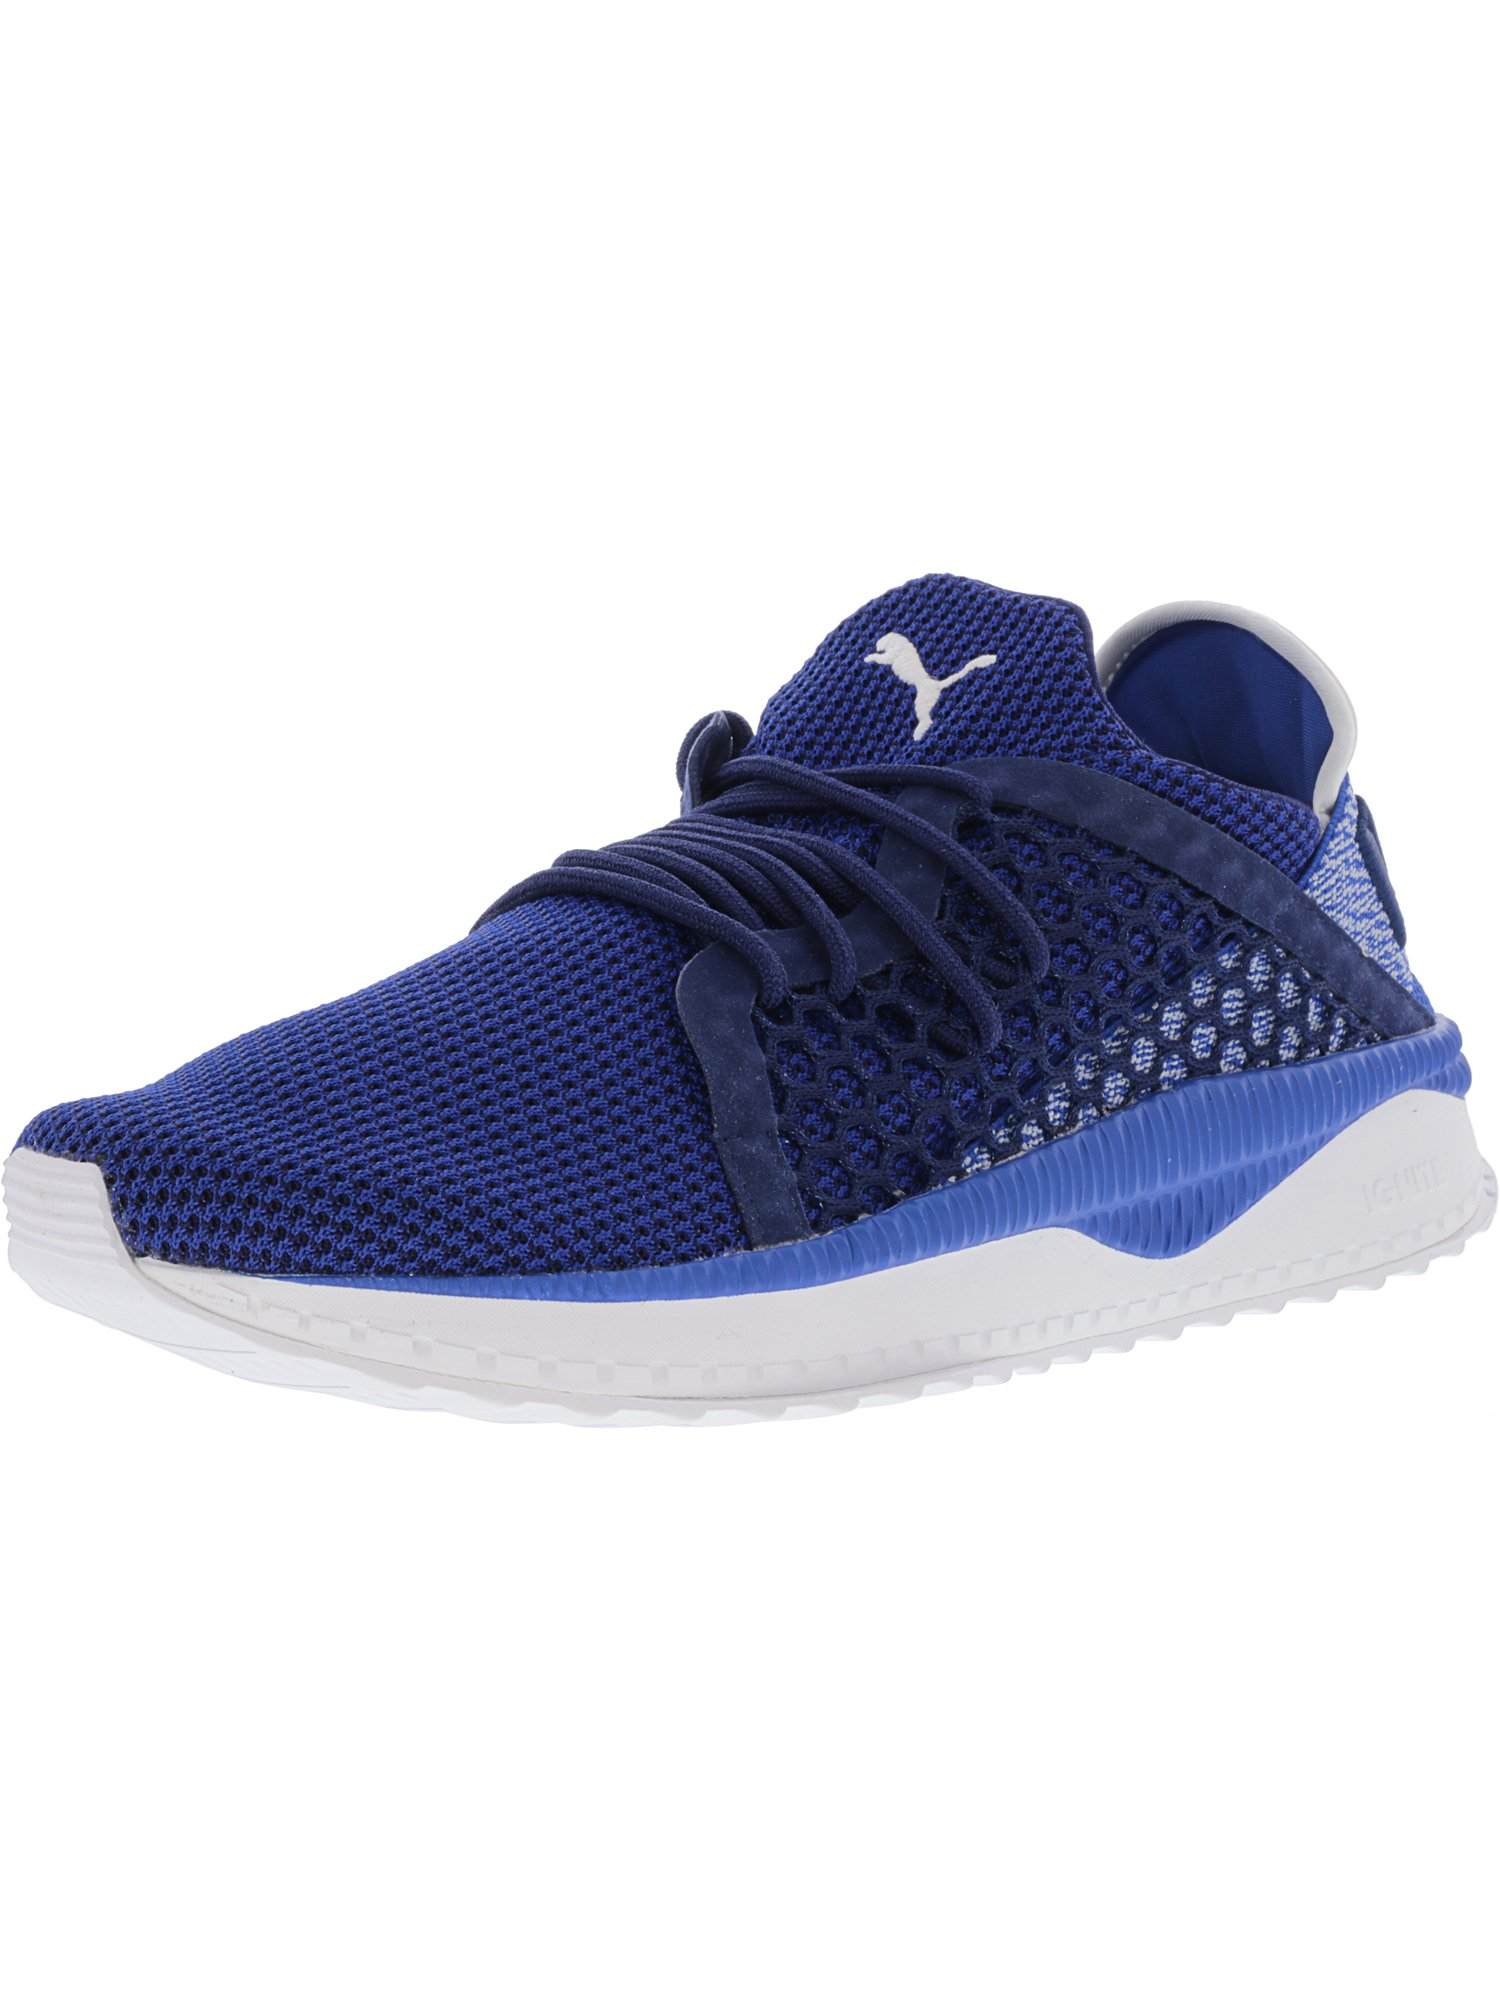 d34265f3f445 PUMA - Puma Men s Tsugi Netfit Lapis Blue   Depths White Ankle-High Fabric  Fashion Sneaker - 11M - Walmart.com